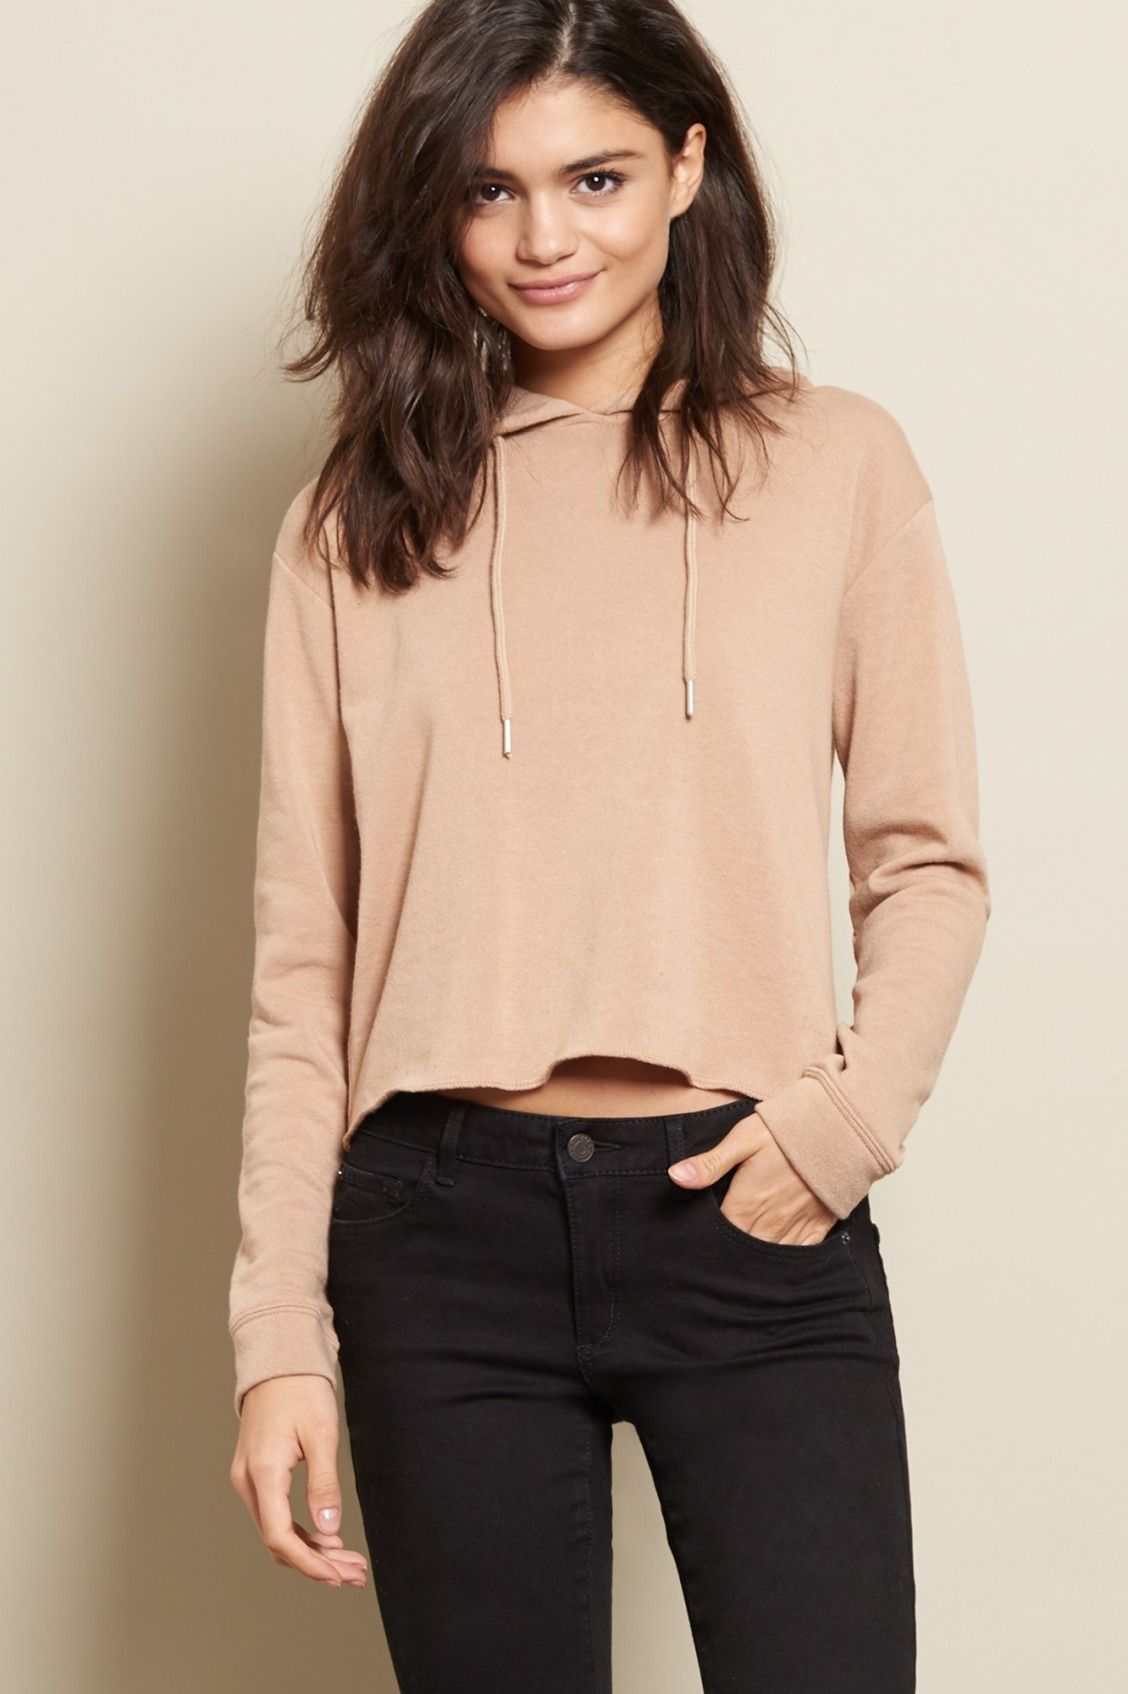 Cropped, cute, and seriously comfy. Featuring a rough hem and a ...